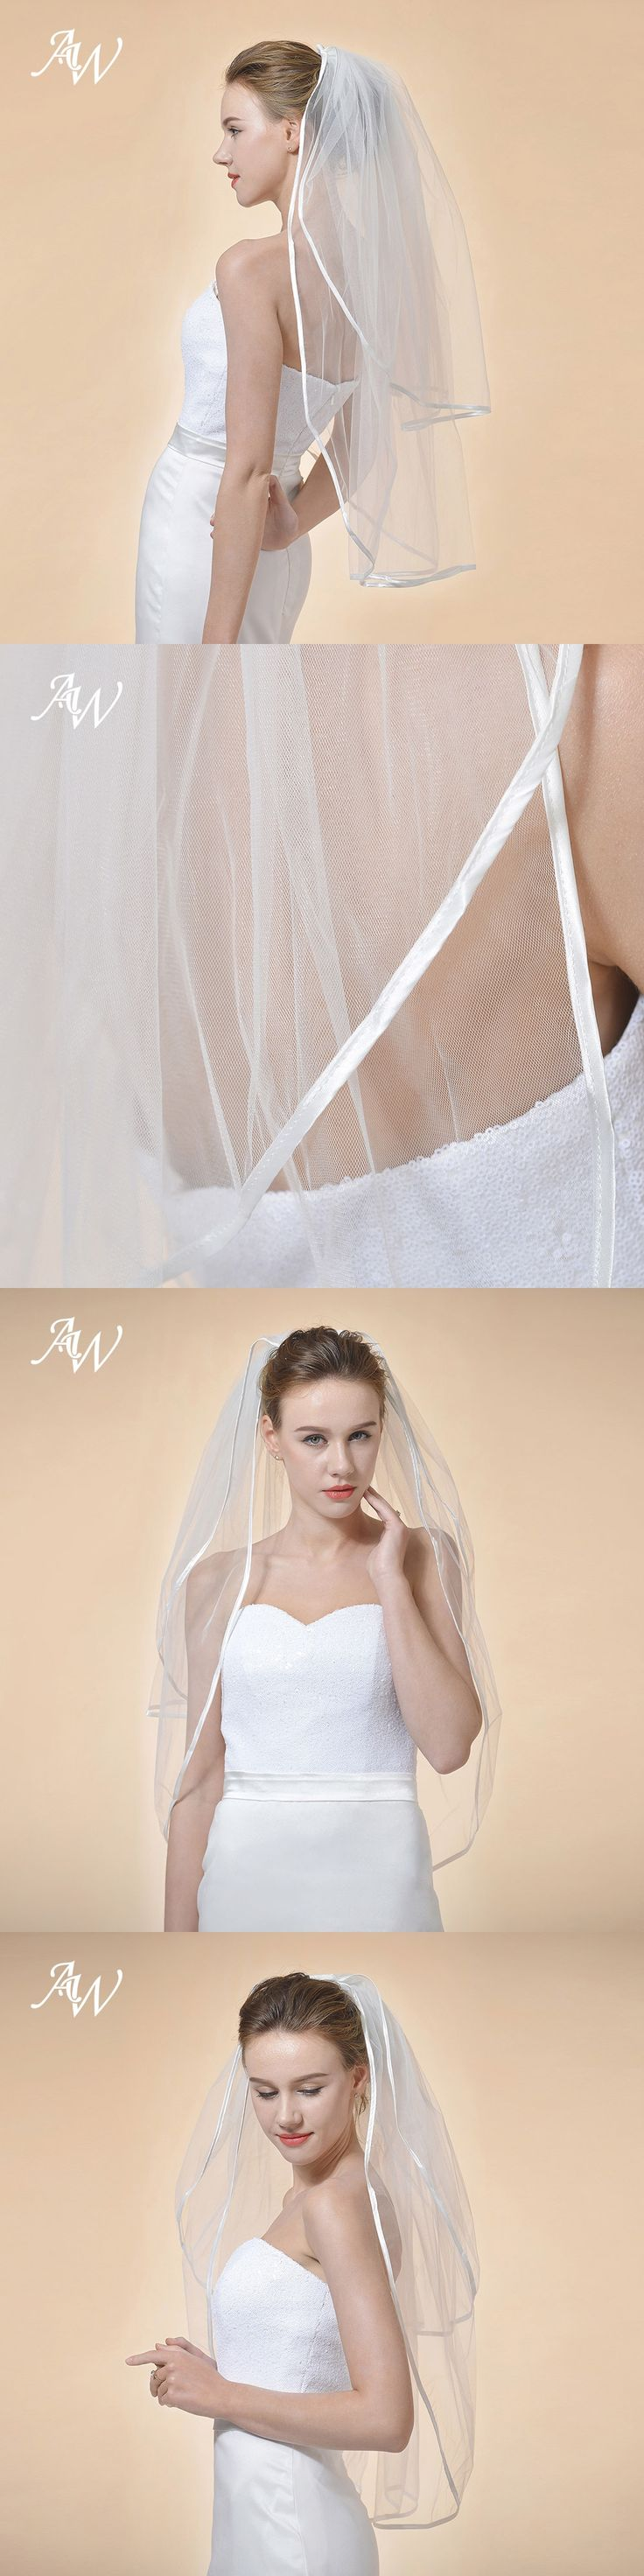 AW 2 Tiers Wedding Veil Shoulder Length Short Bridal Veil with Ribbon Satin Edge Bridal Accessories Ivory Veil